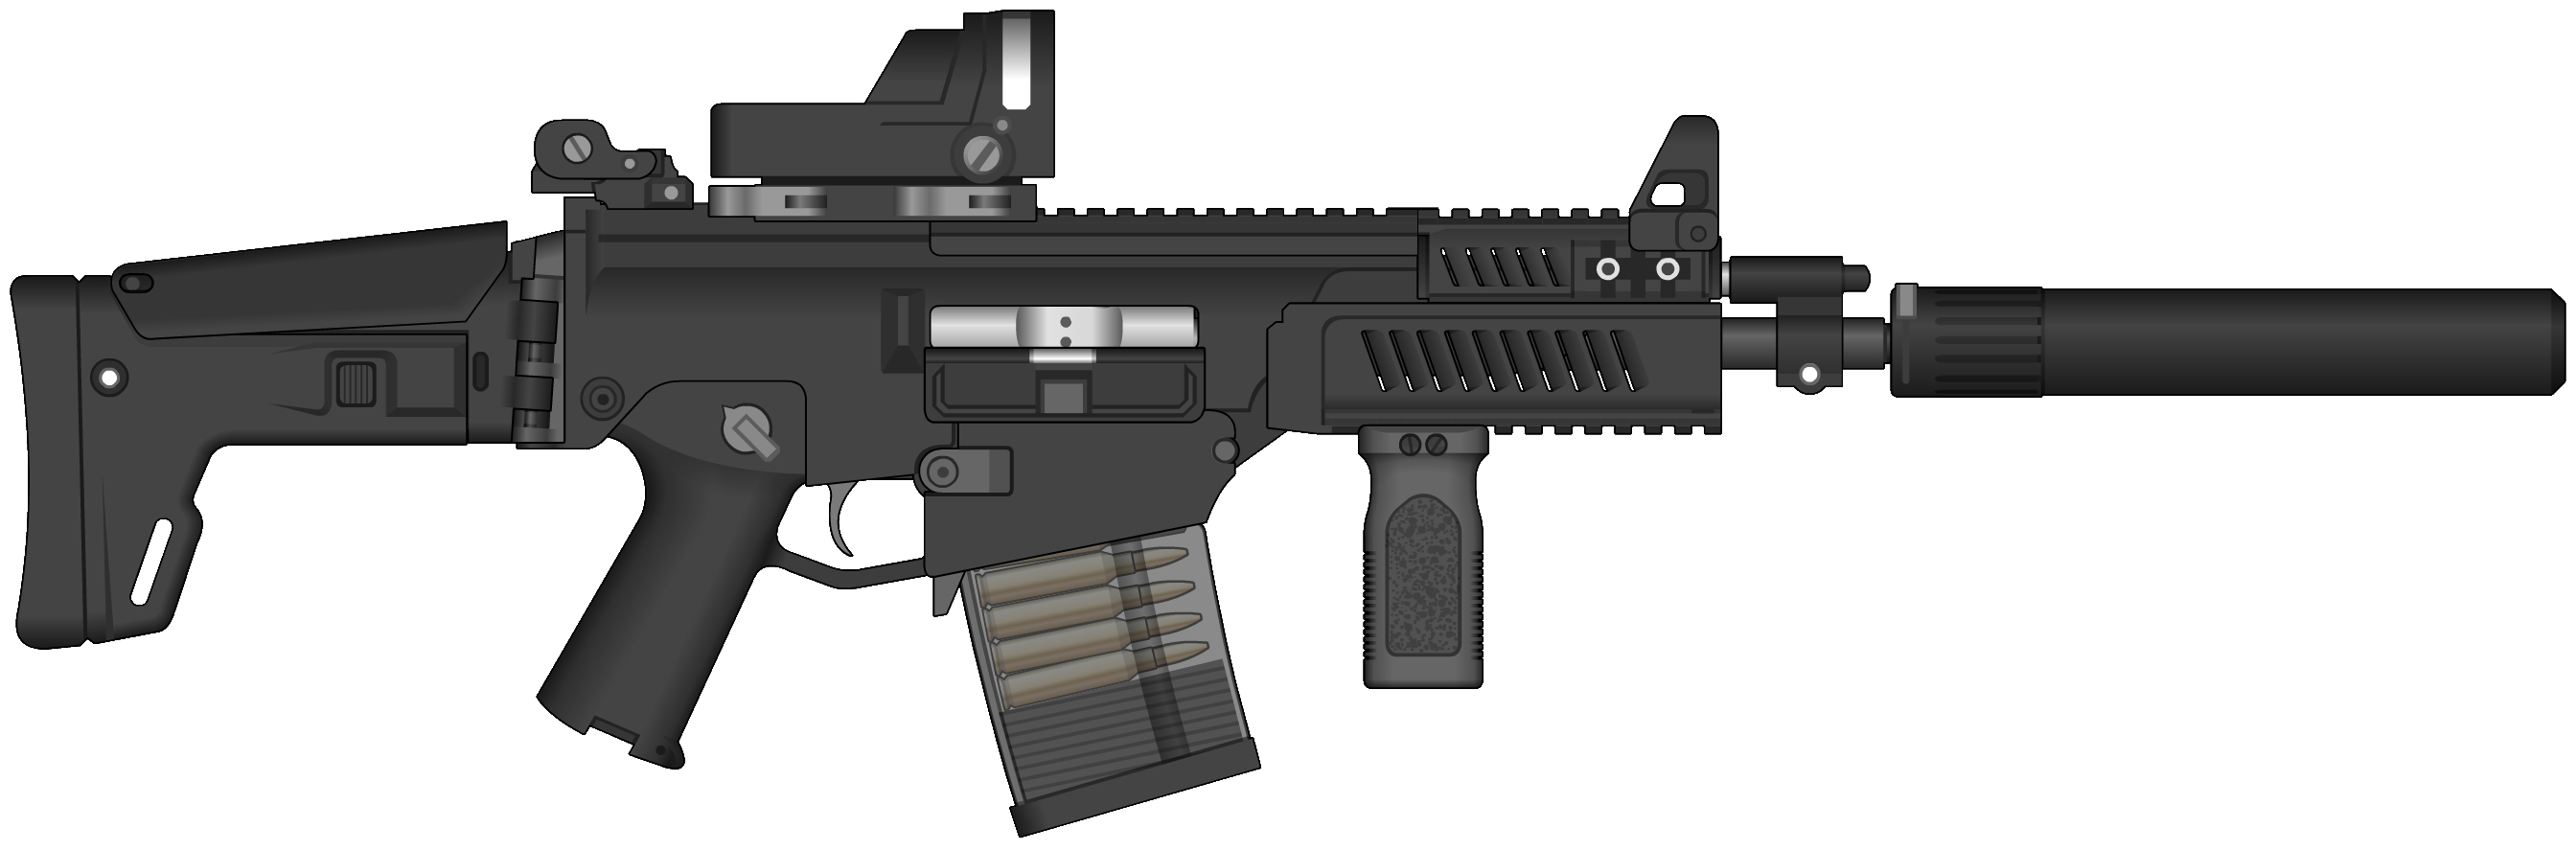 Assault rifle png image. Clipart gun long gun